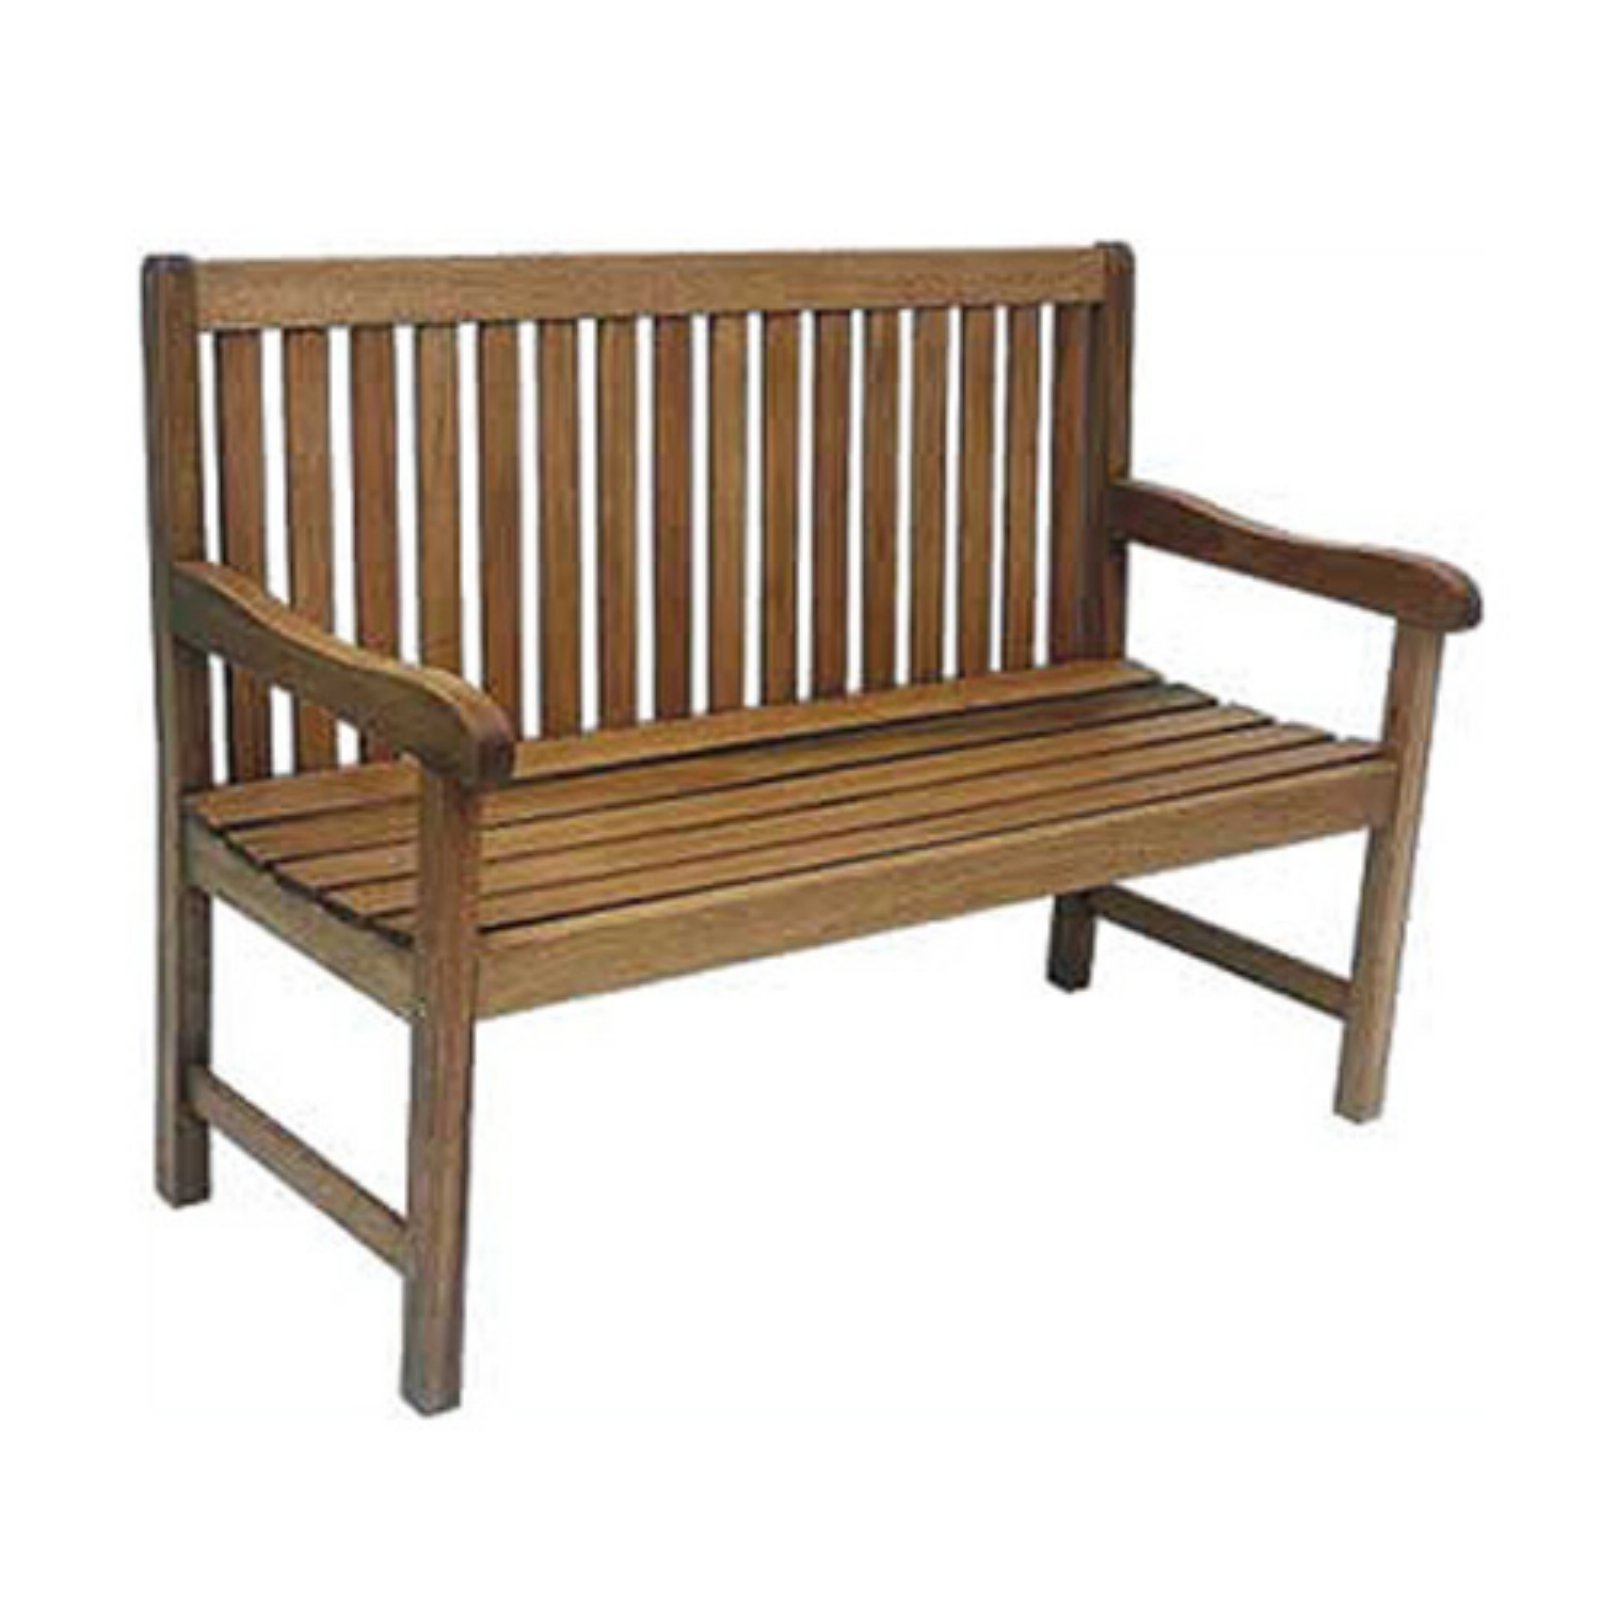 Milano 5' FSC Eucalyptus Wood Outdoor Bench, Dark Brown